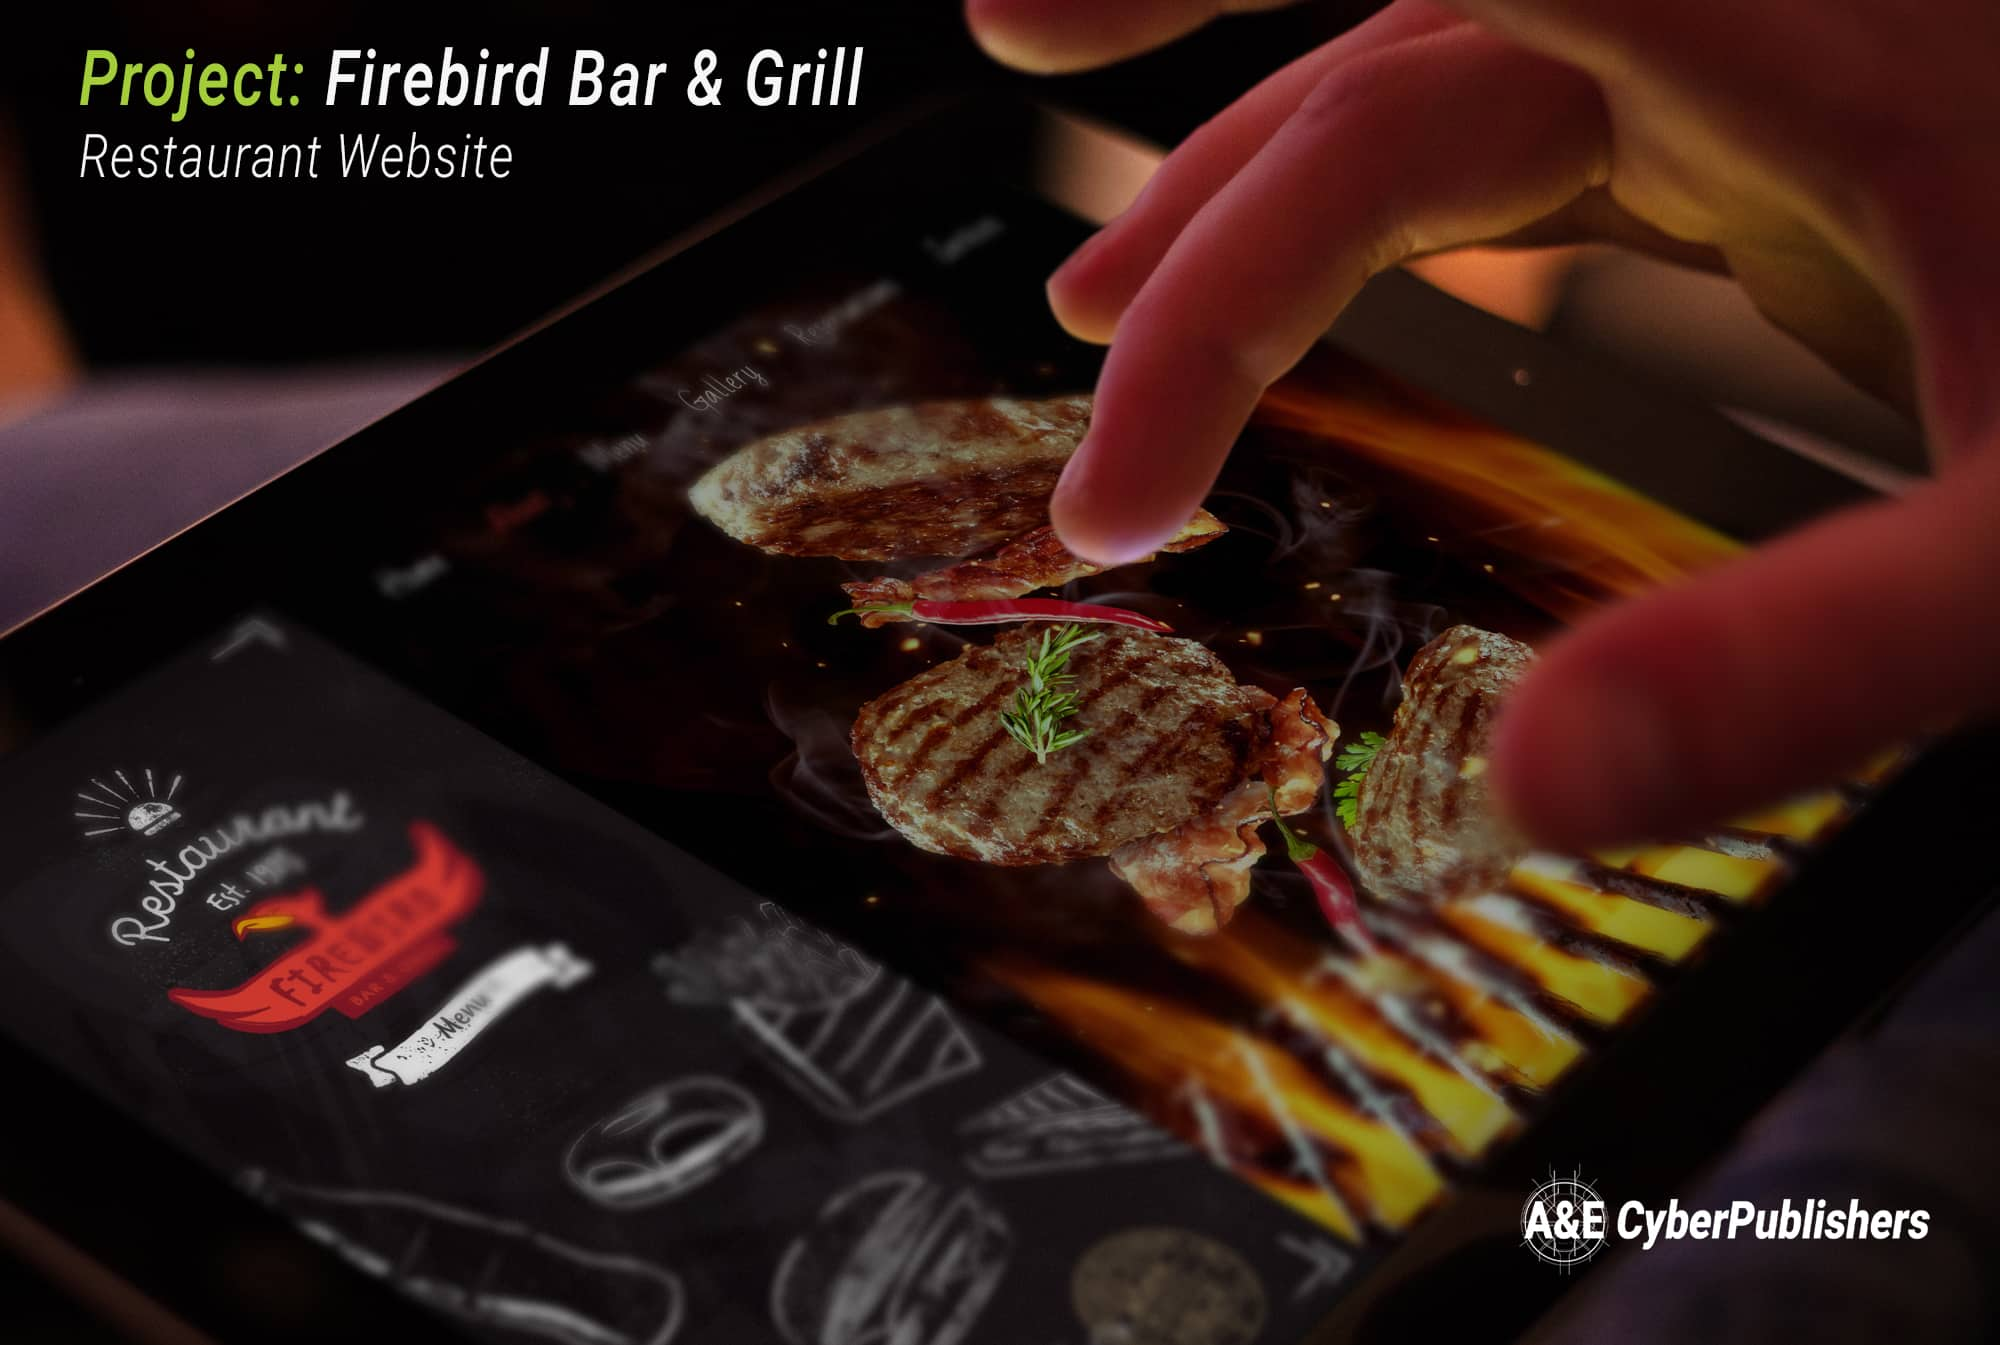 Firebird Bar & Grill Logo and Website